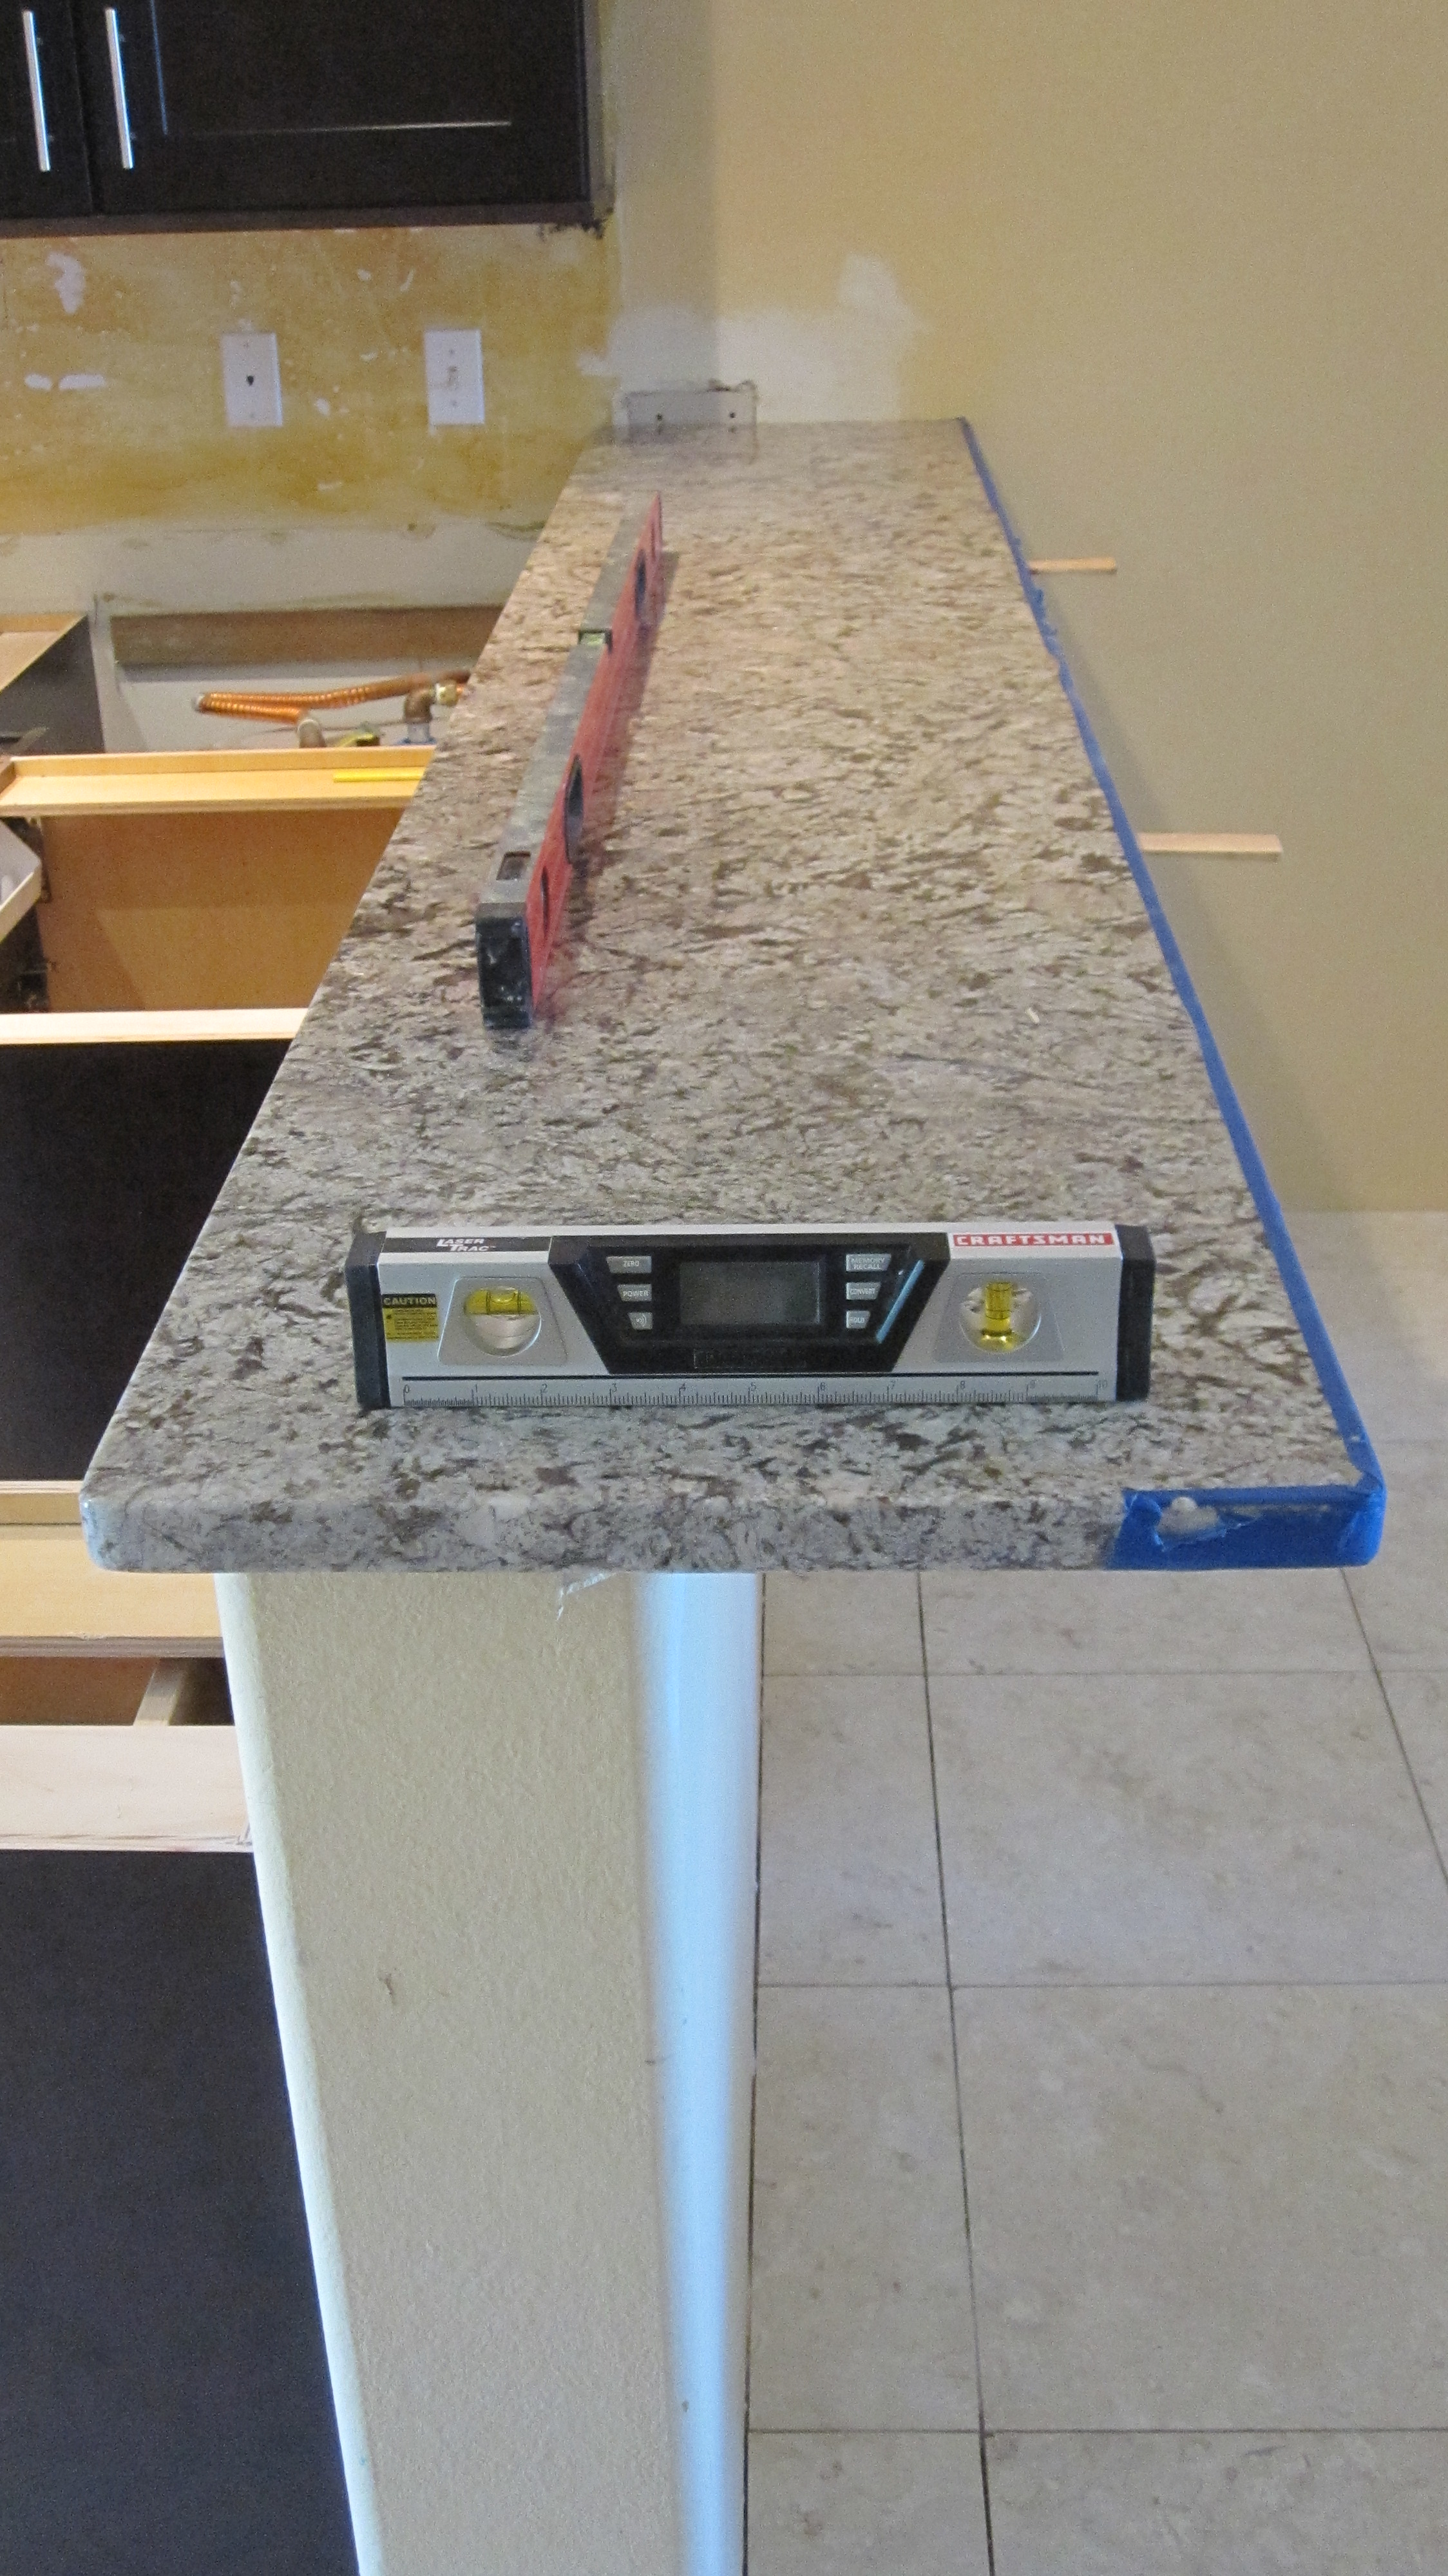 Granite Overhang Limits For Your Kitchen Countertops Armchair Builder Blog Build Renovate Repair Your Own Home Save Money As An Owner Builder